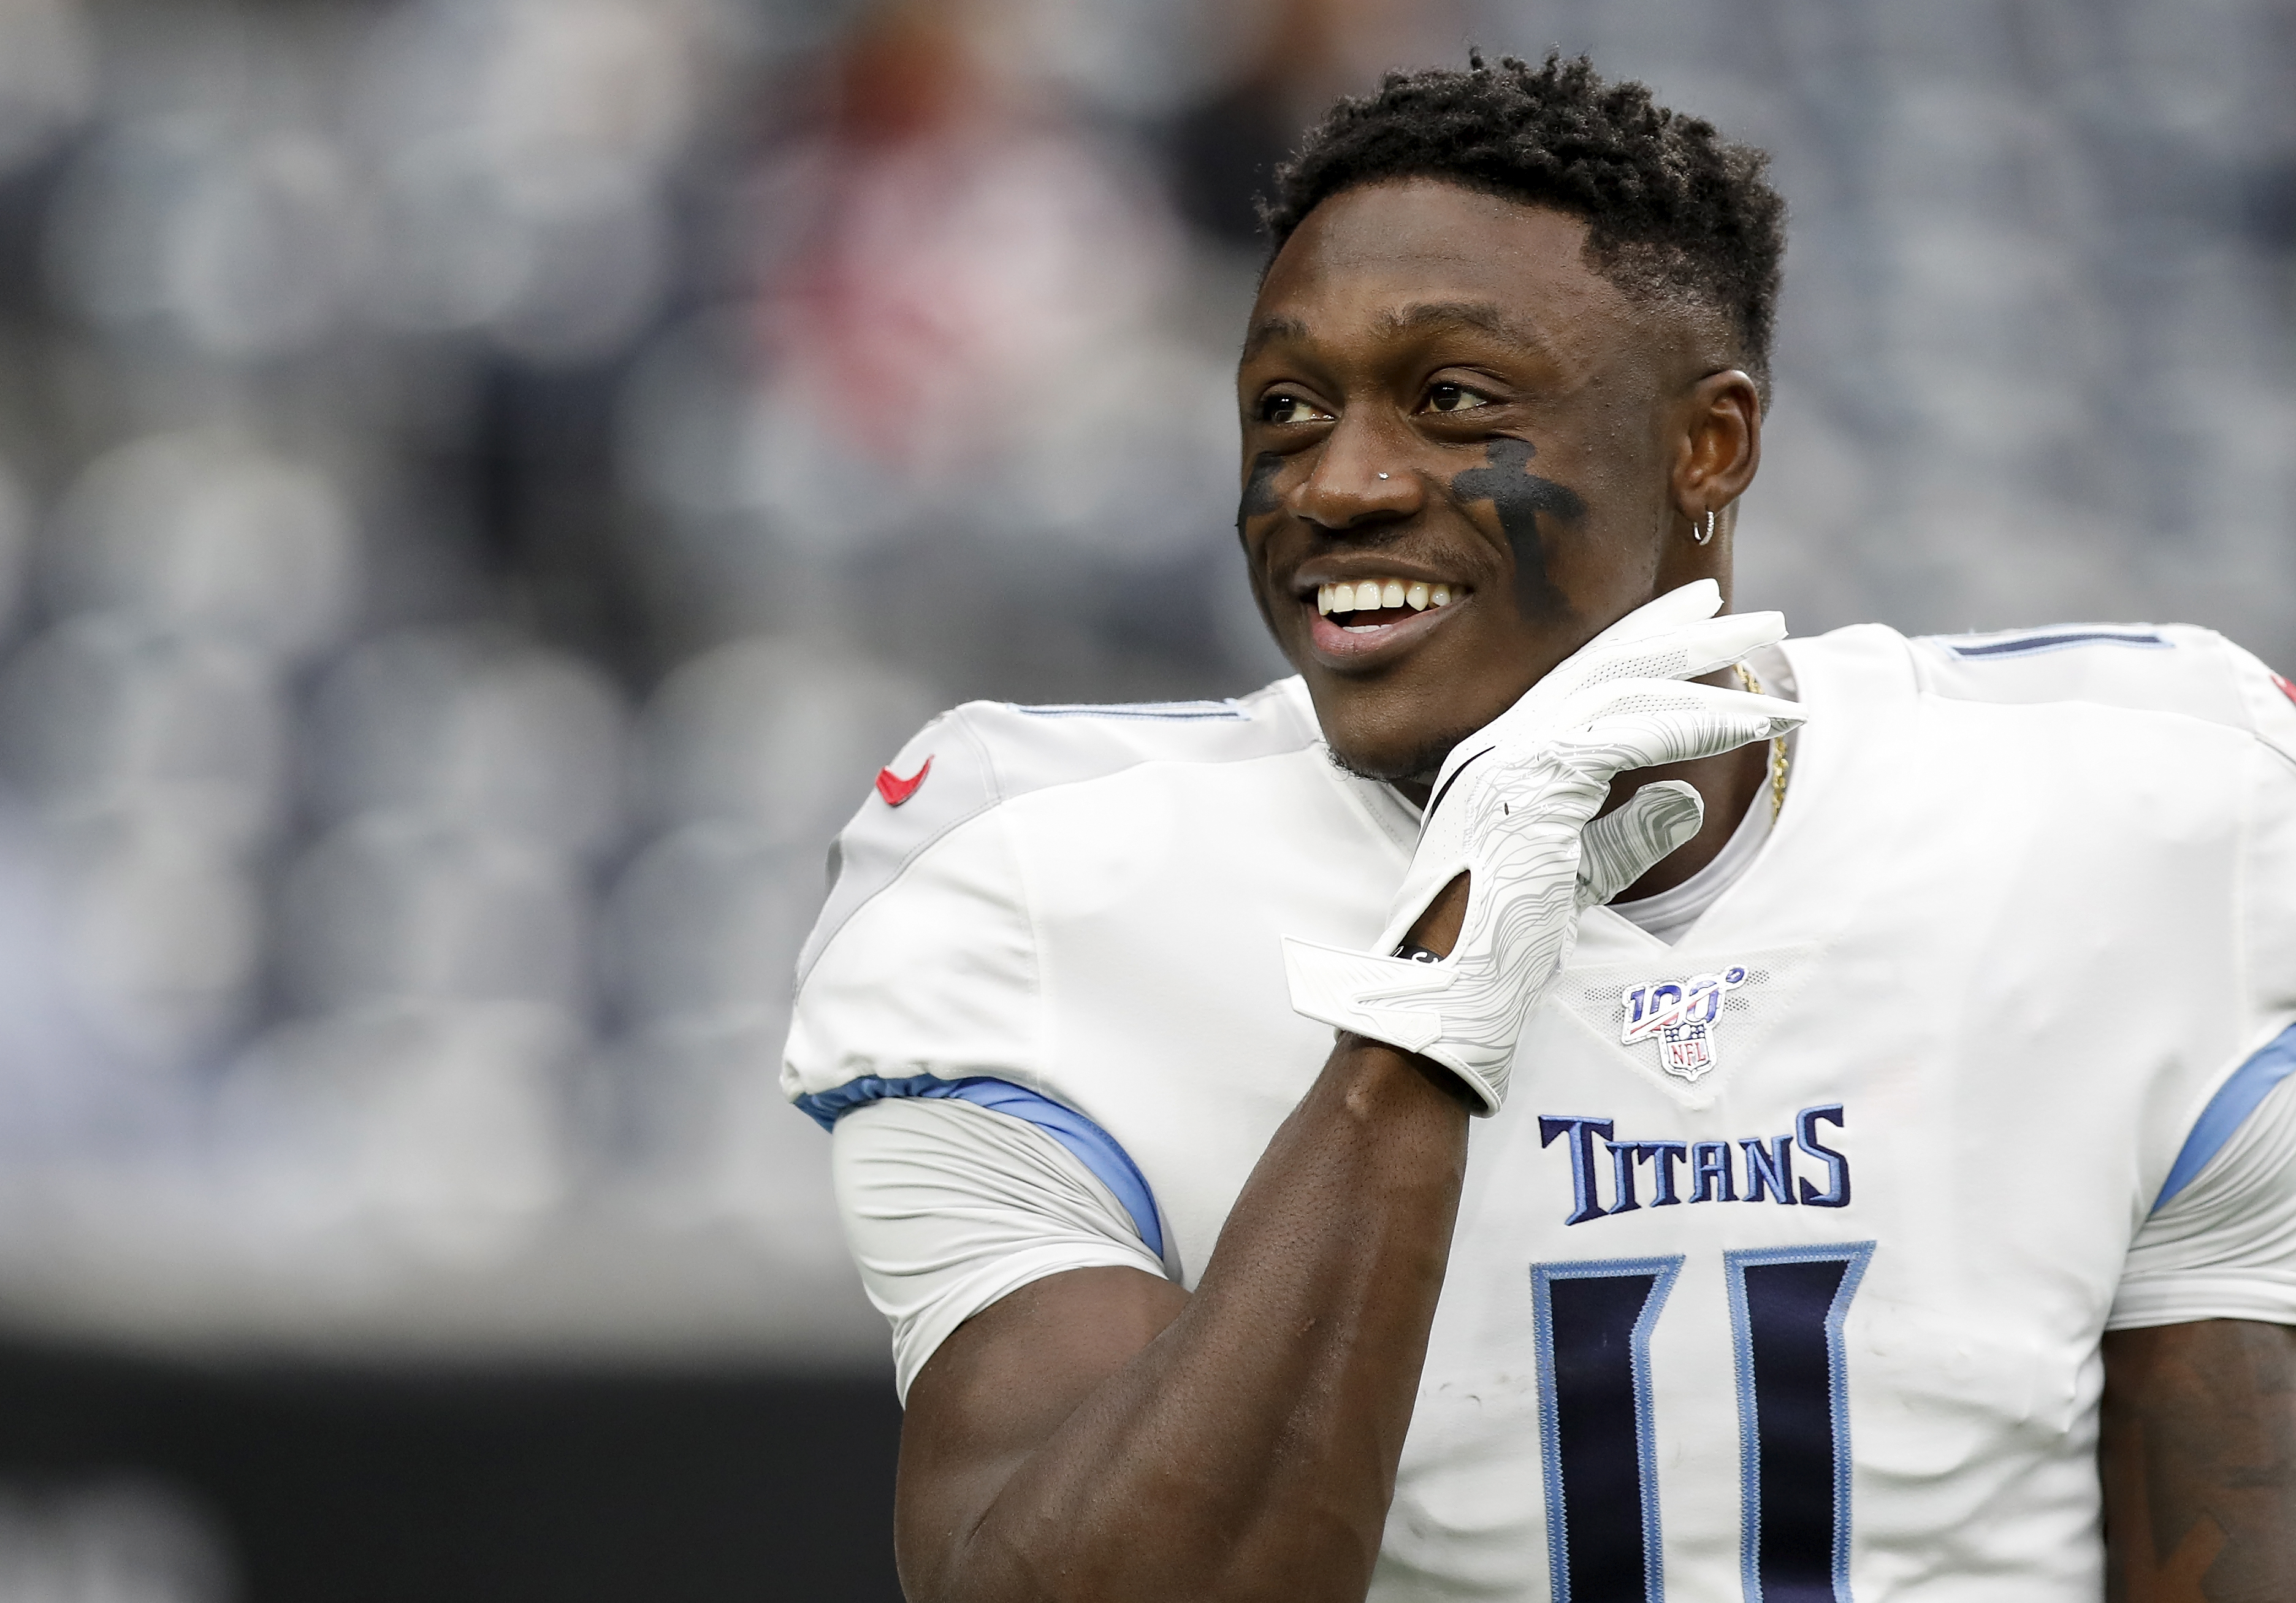 A.J. Brown #11 of the Tennessee Titans warms up before the game against the Houston Texans at NRG Stadium on December 29, 2019 in Houston, Texas.